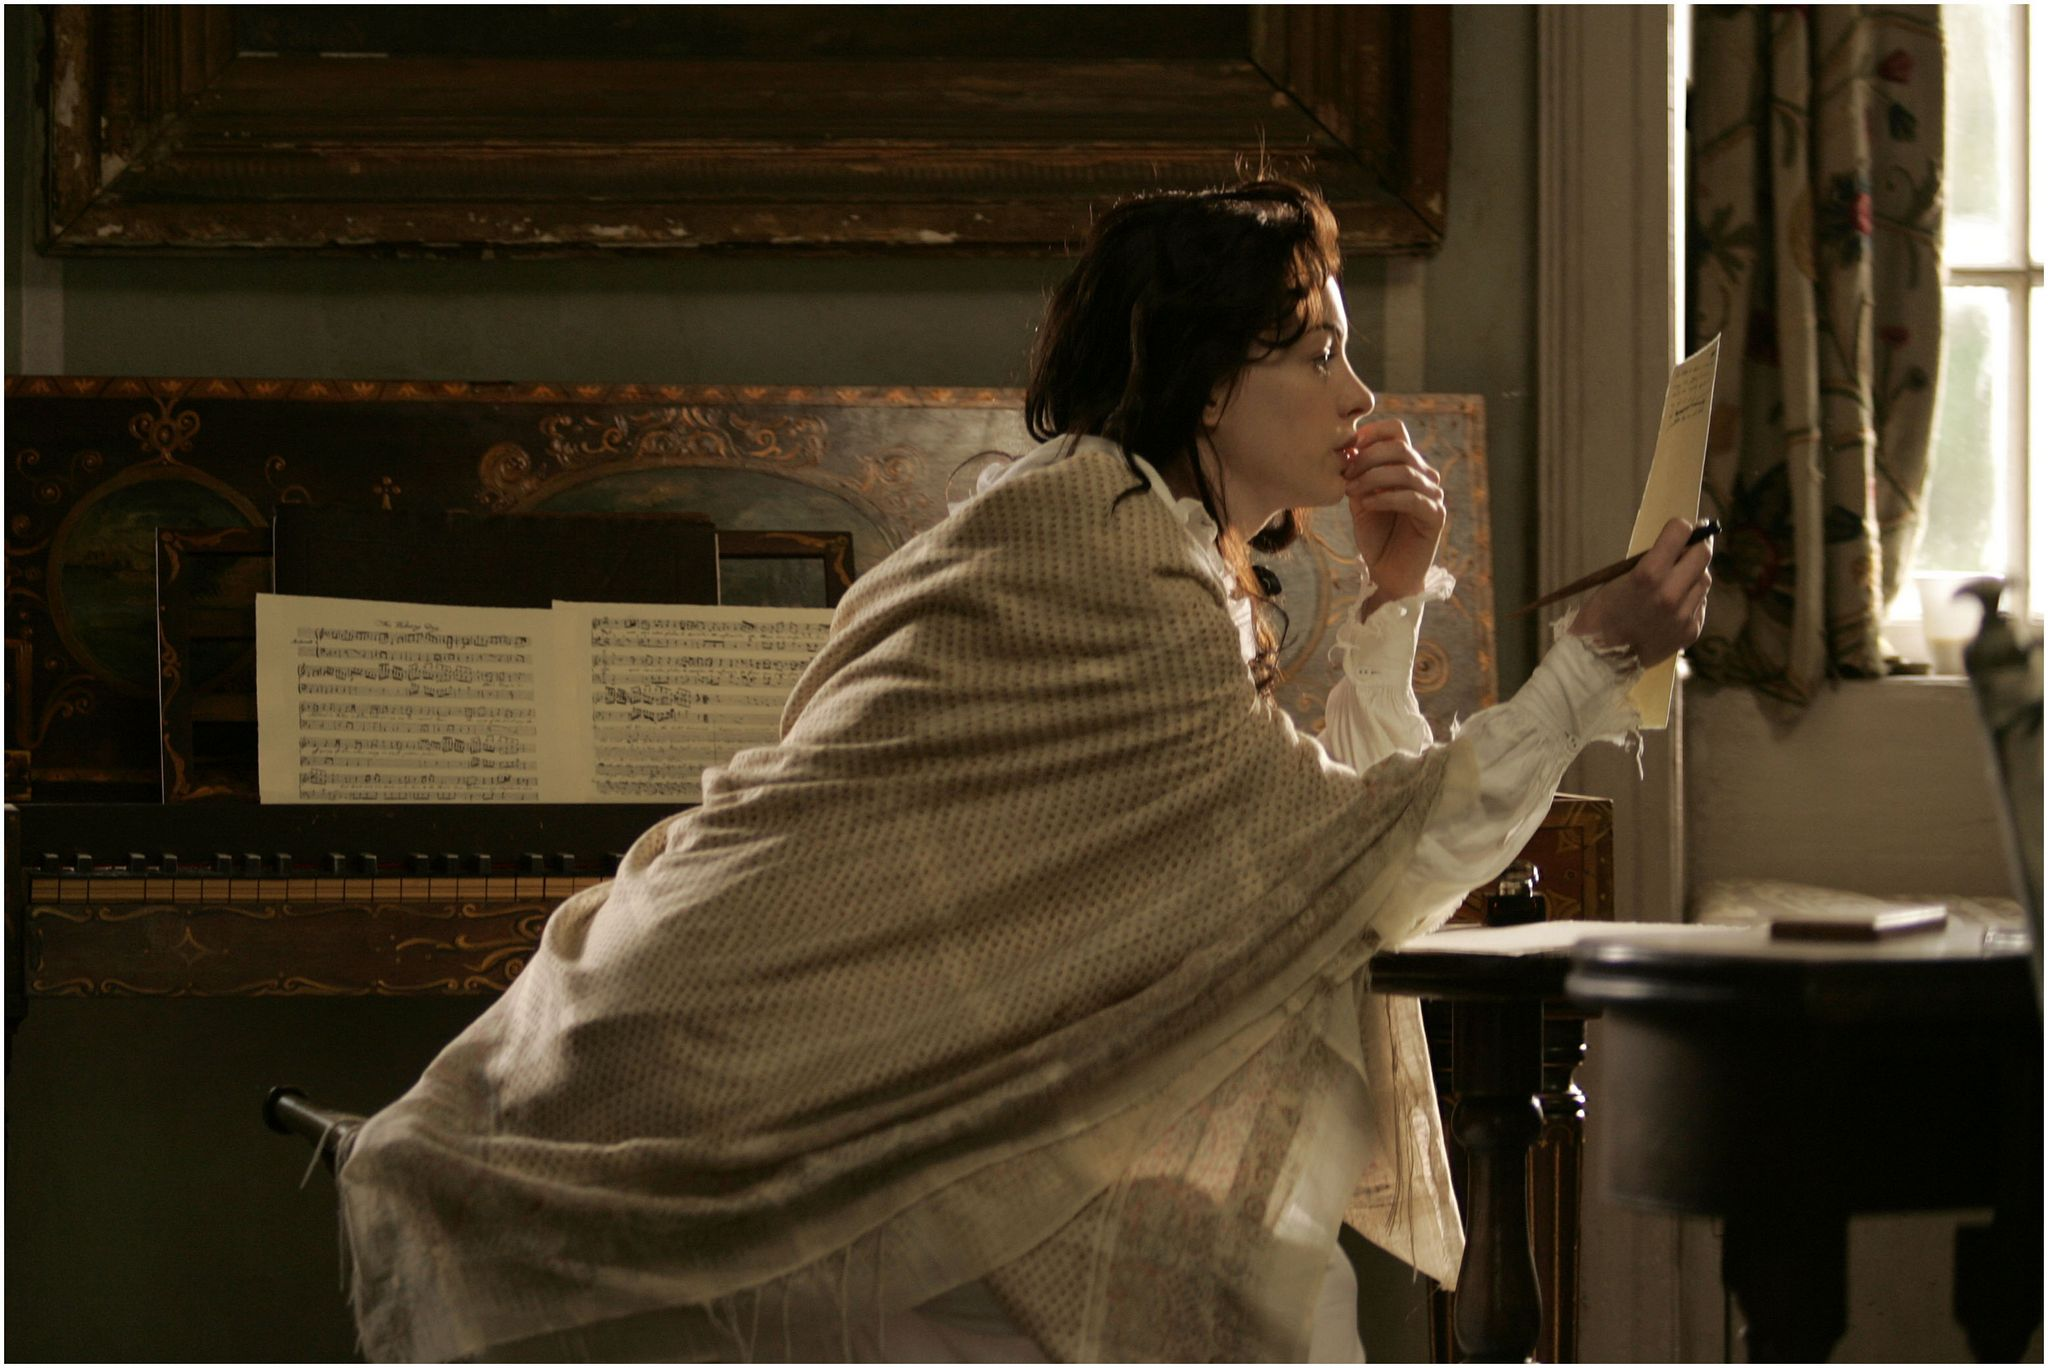 Film Title: Becoming Jane